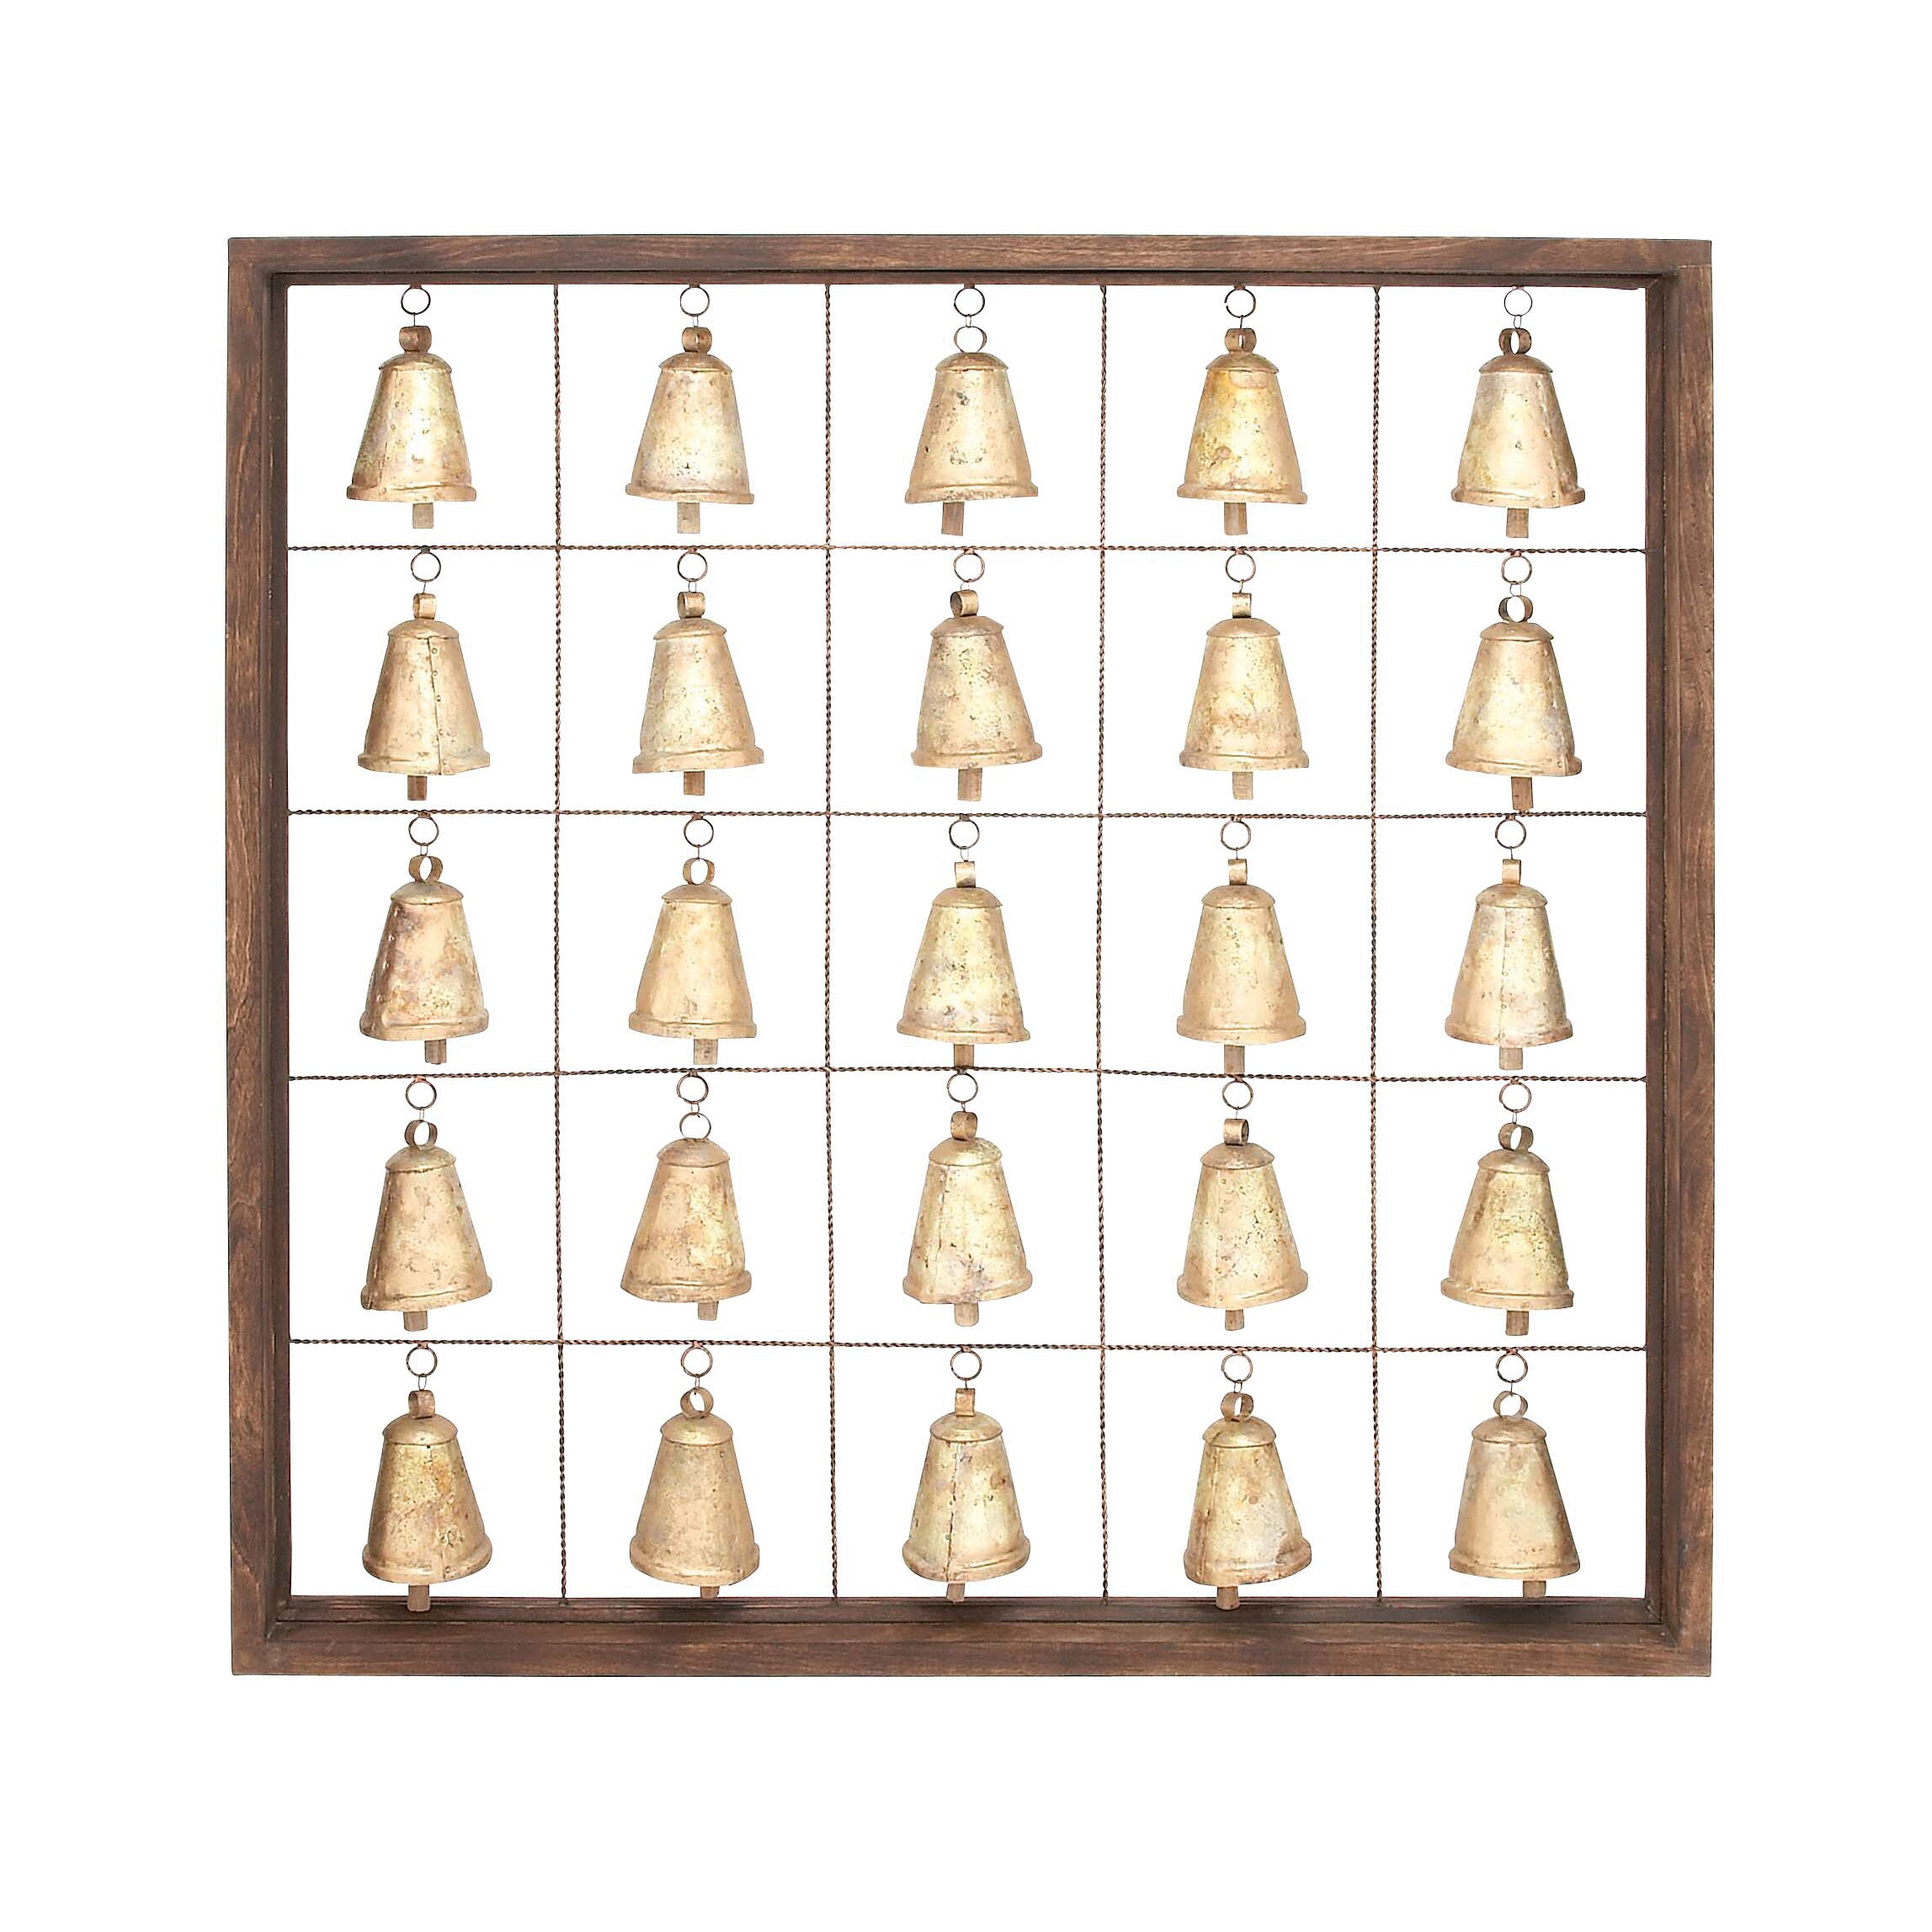 Woodland Imports Classic Wall D�cor Reviews: Woodland Imports Classic 25 Bell Wall Décor